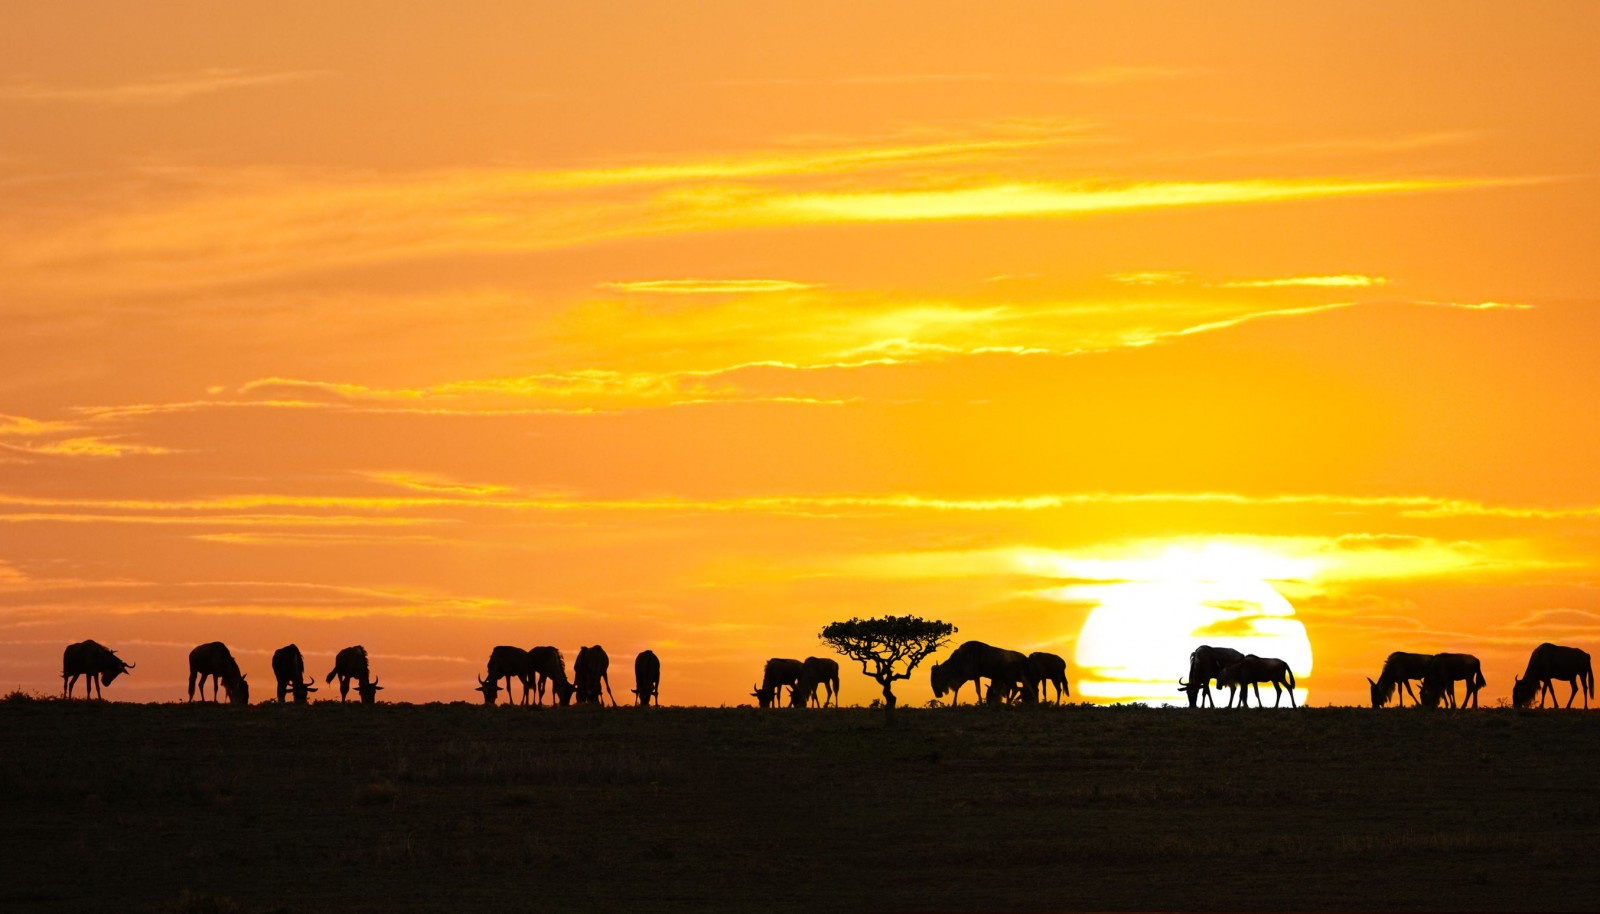 Serengeti National Park sunset with antelopes